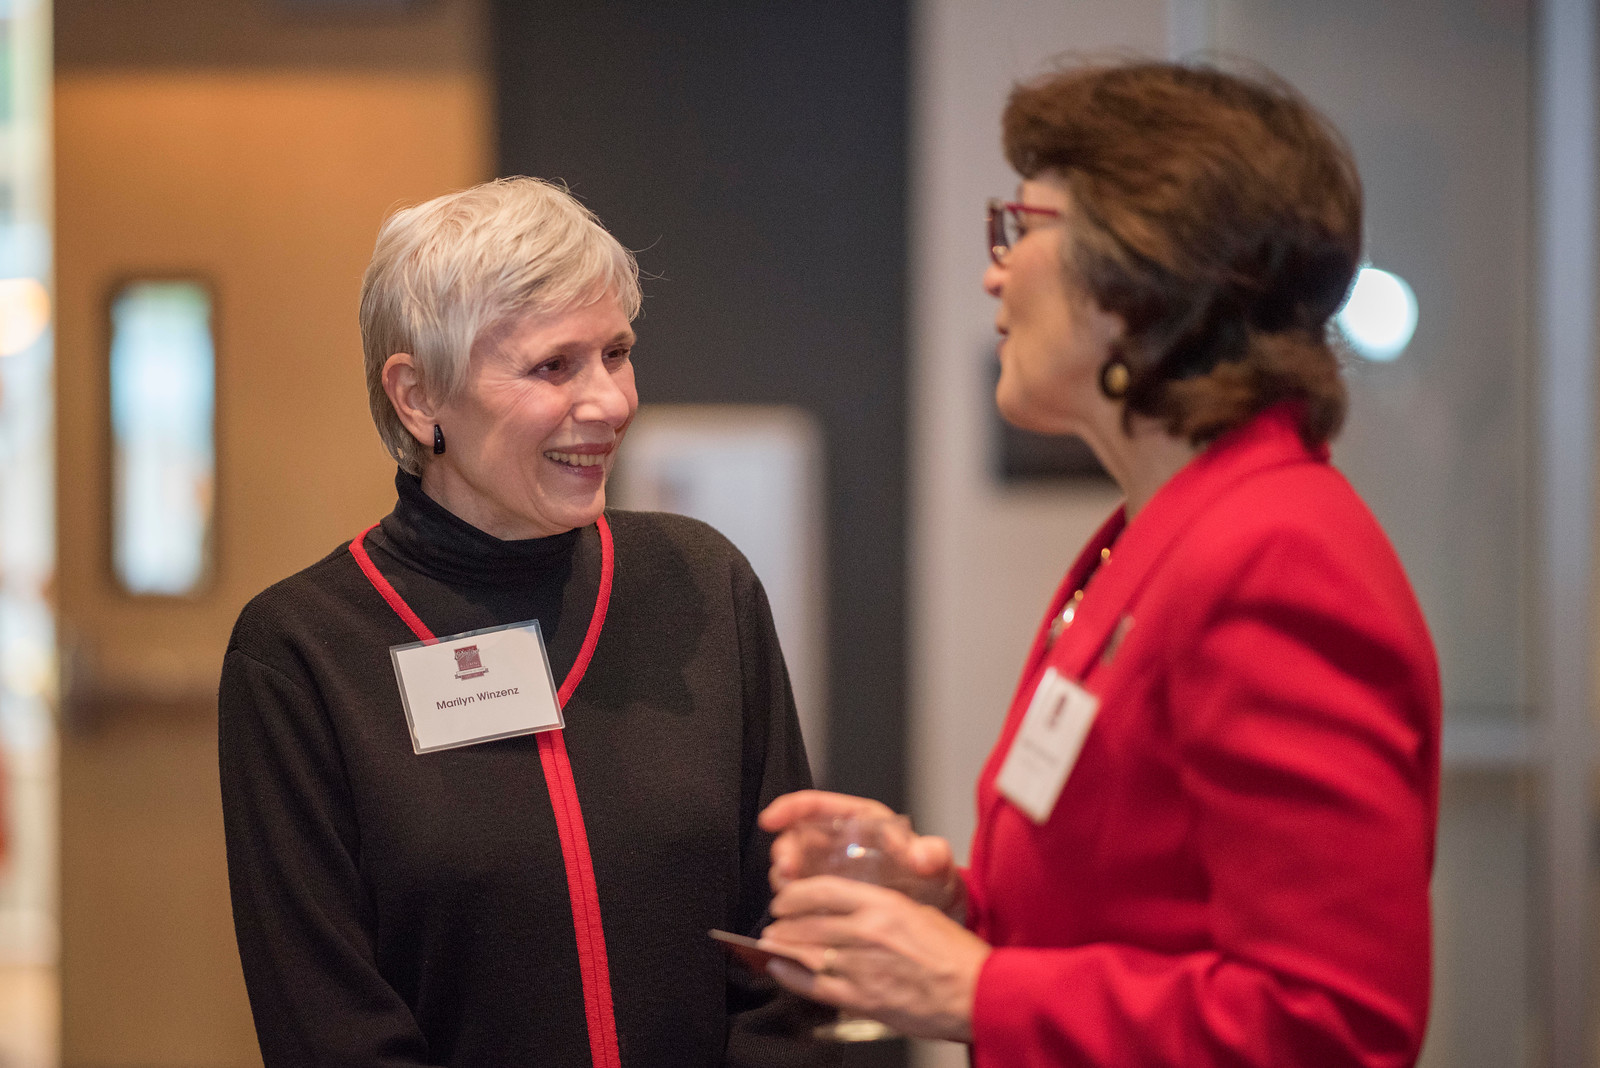 Marilyn Winzenz (left) talks with President Gayle Hutchinson (right) as guests and honorees enjoy the Distinguished Alumni Dinner on Friday, March 24, 2017 in Chico, Calif. (Jason Halley/University Photographer)